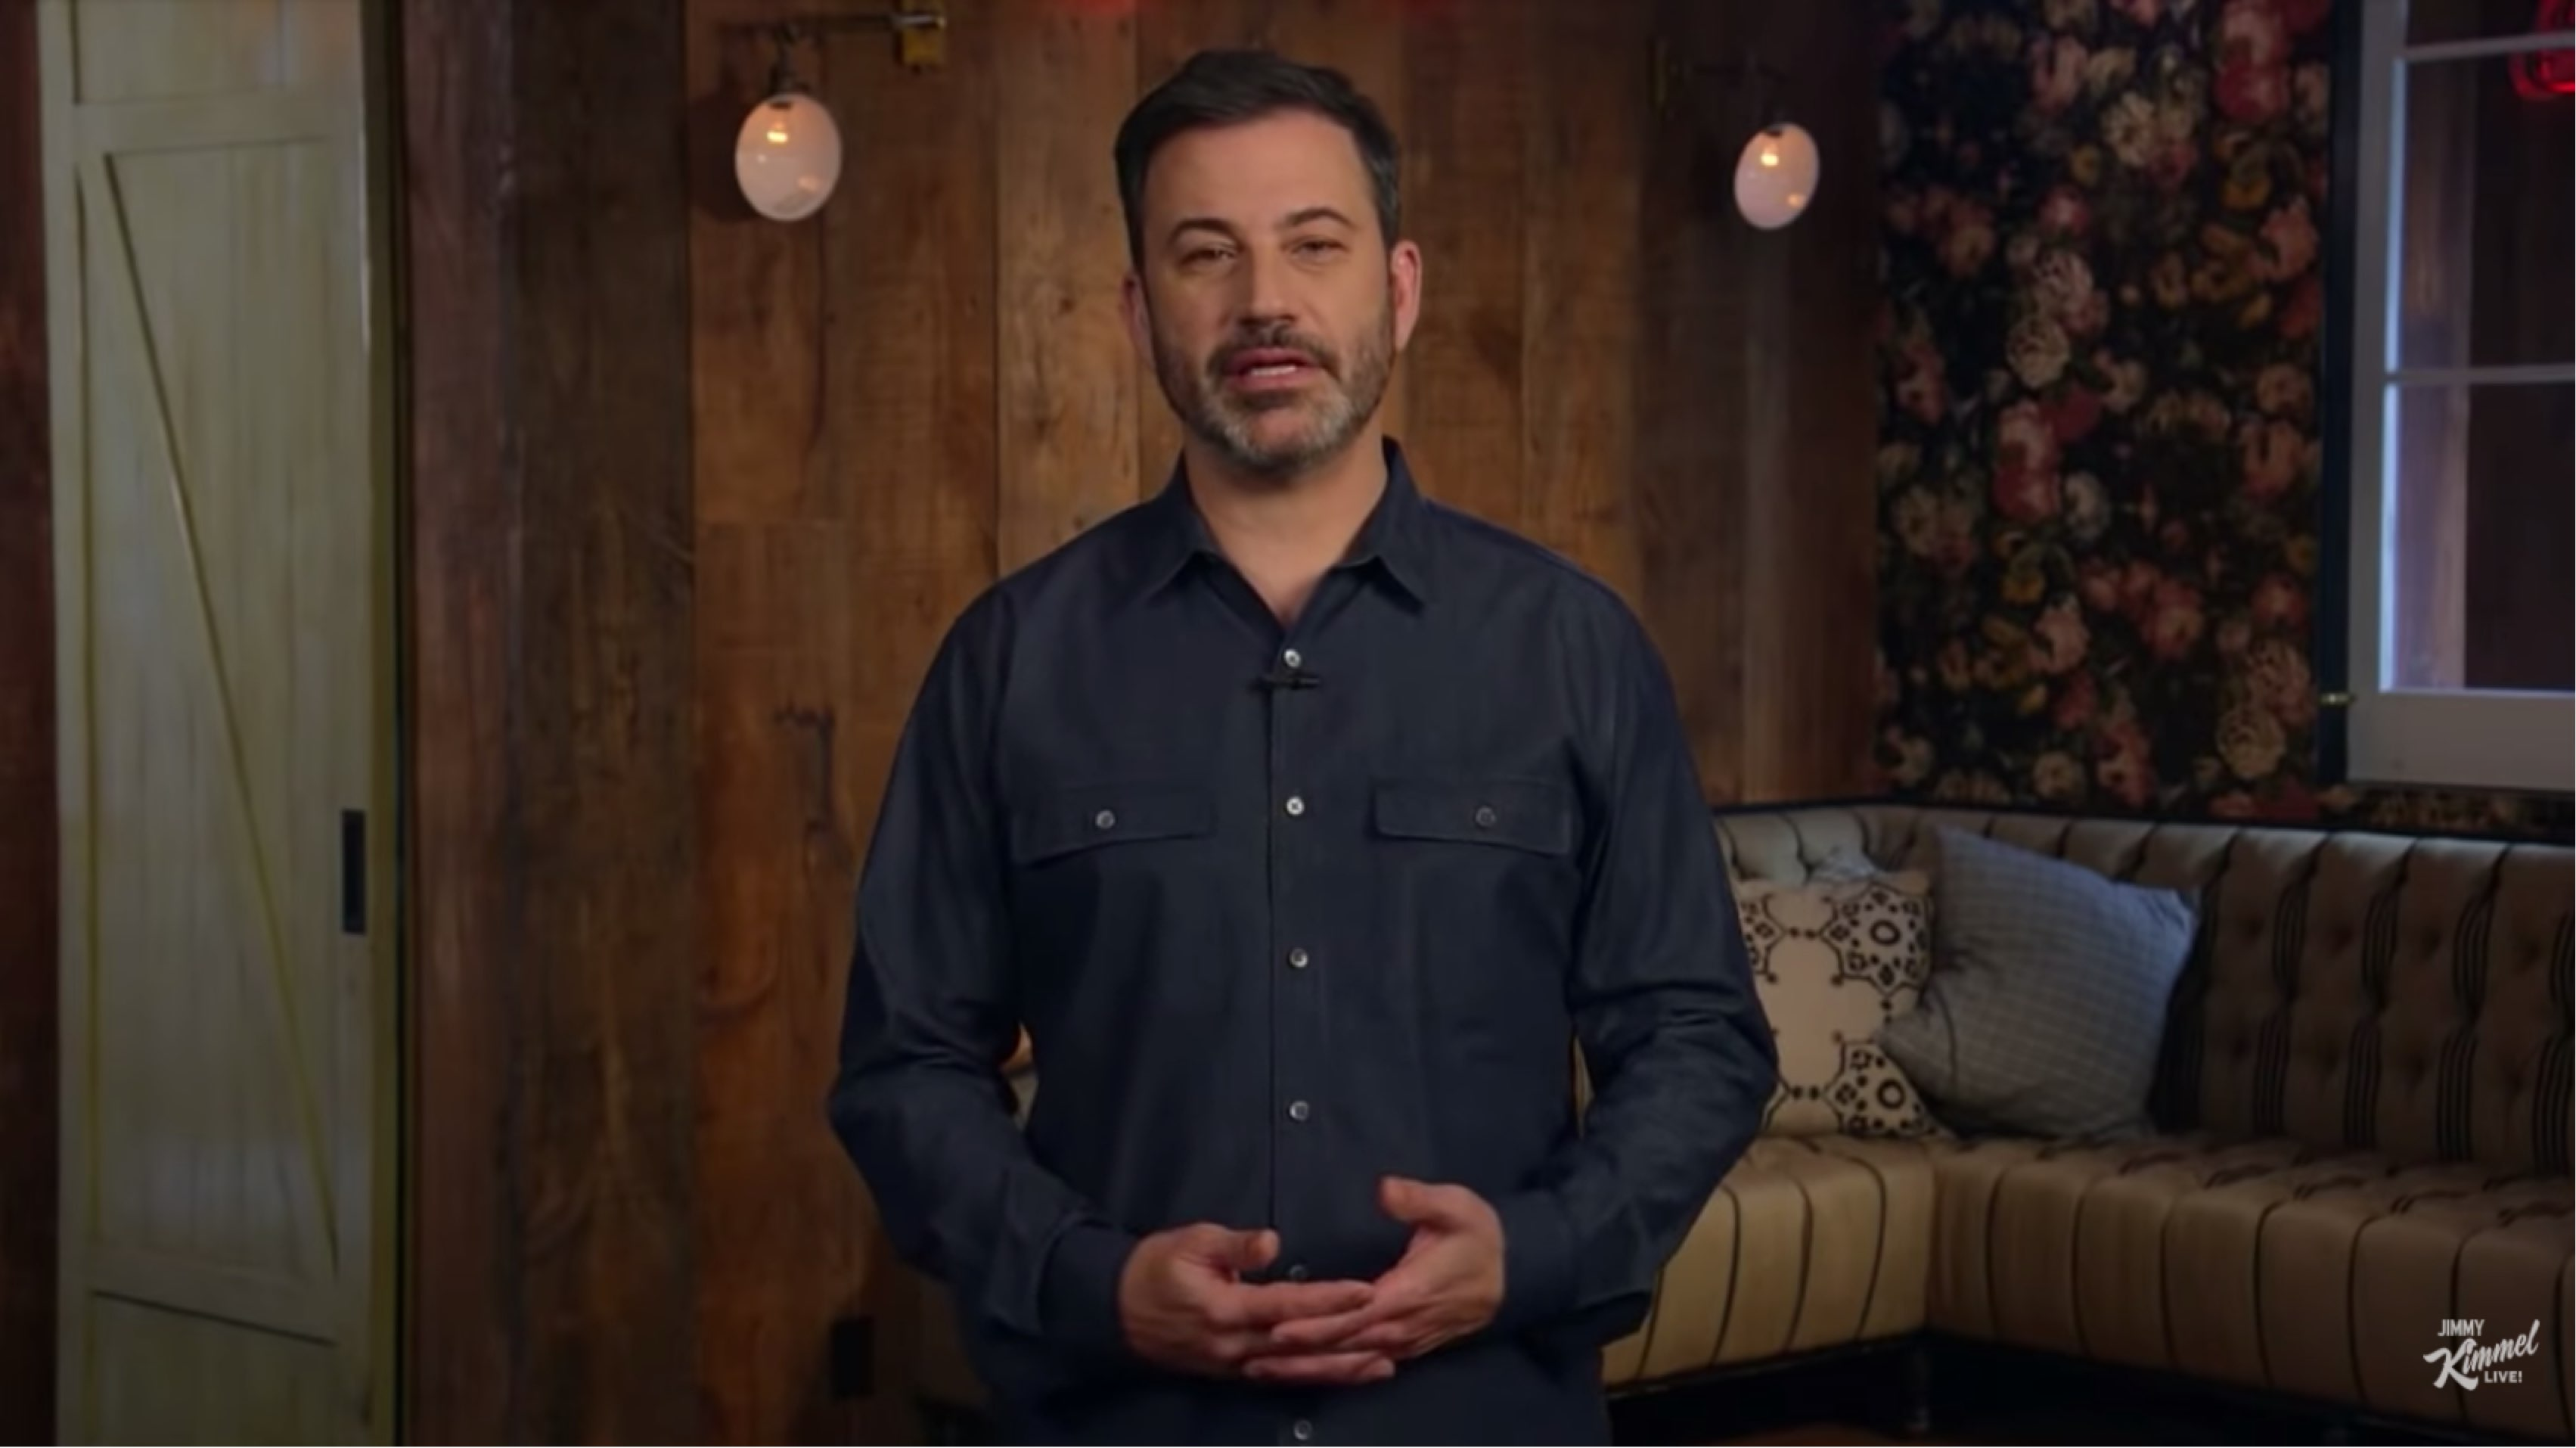 Jimmy Kimmel Reflects On His Own White Privilege In Jimmy Kimmel Live Variety